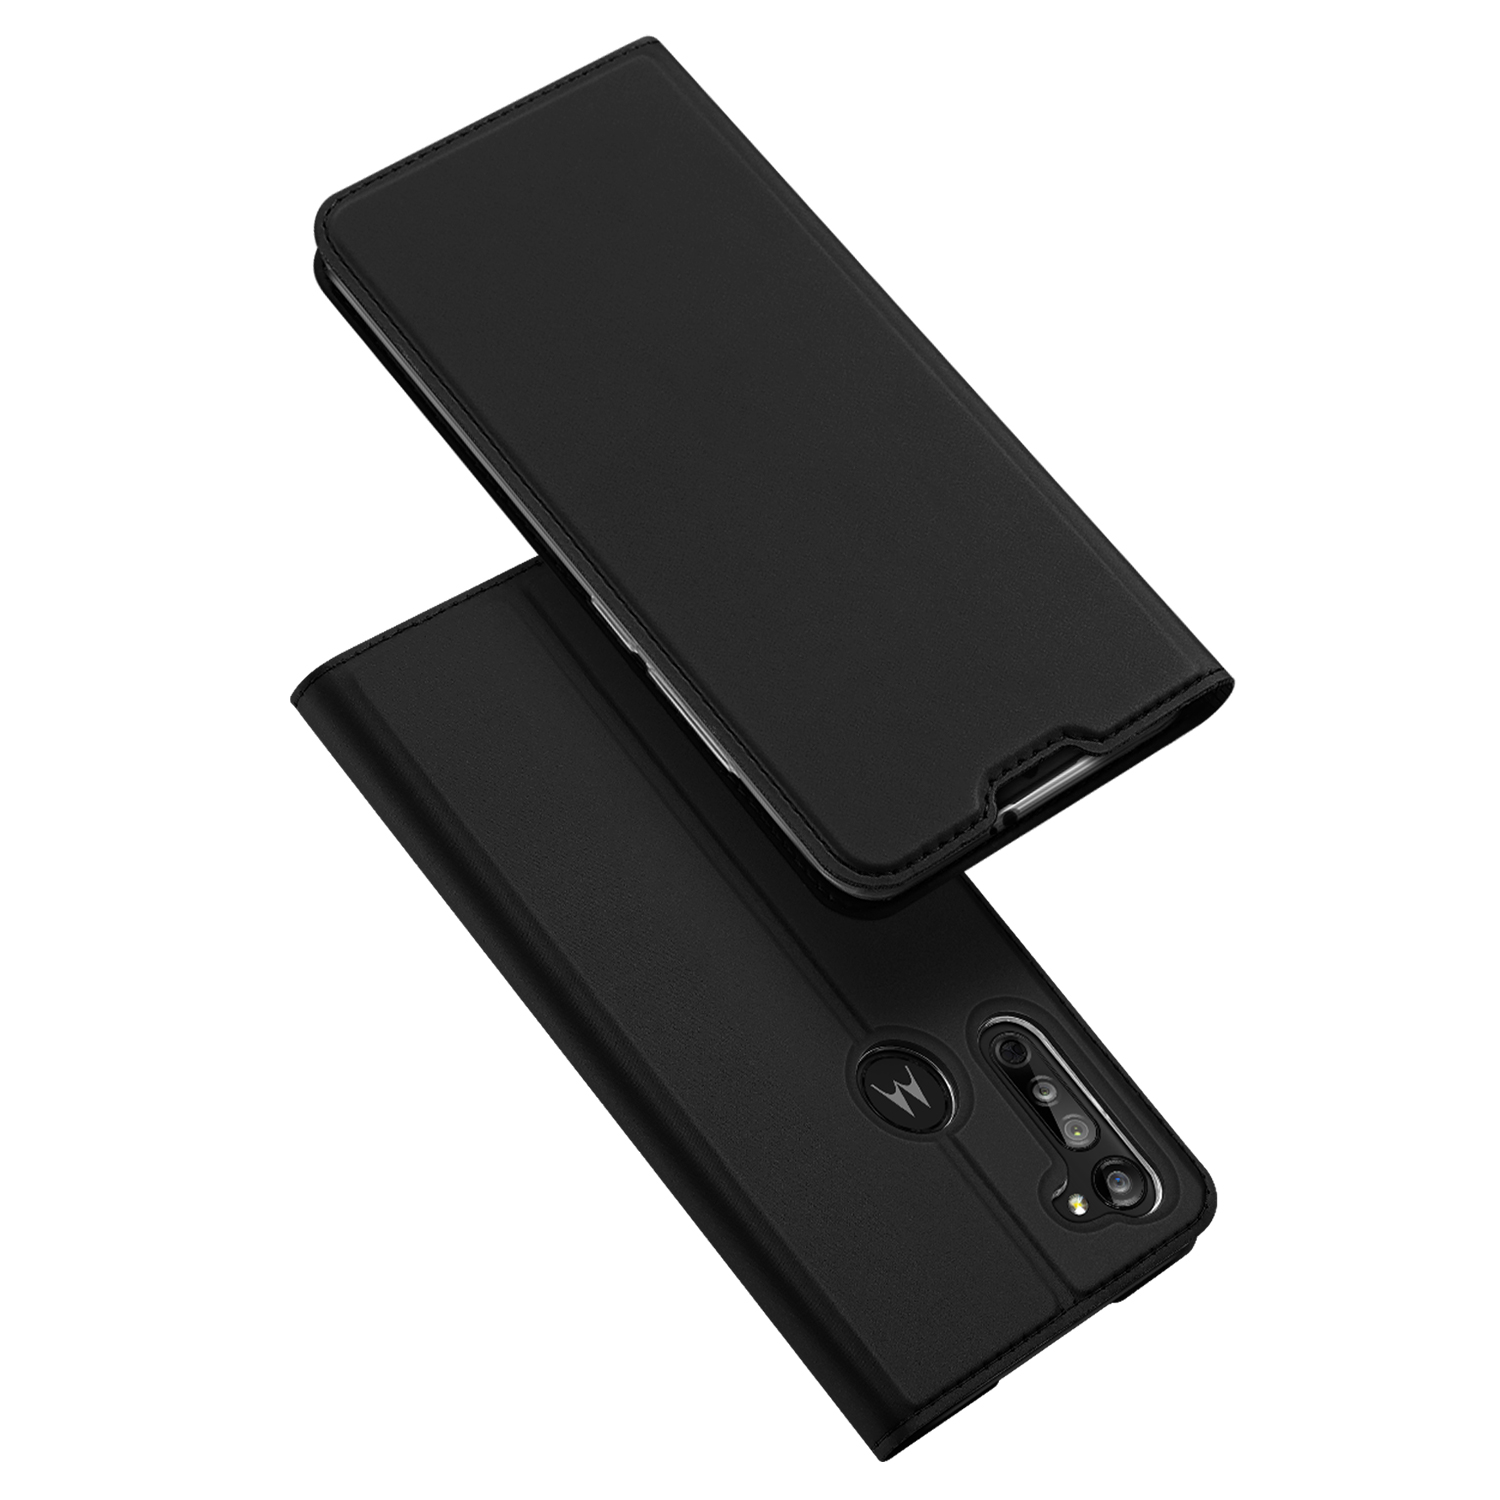 DUX DUCIS For Moto G8/G8 Power Leather Mobile Phone Cover Magnetic Protective Case Bracket with Cards Slot black_Moto G8